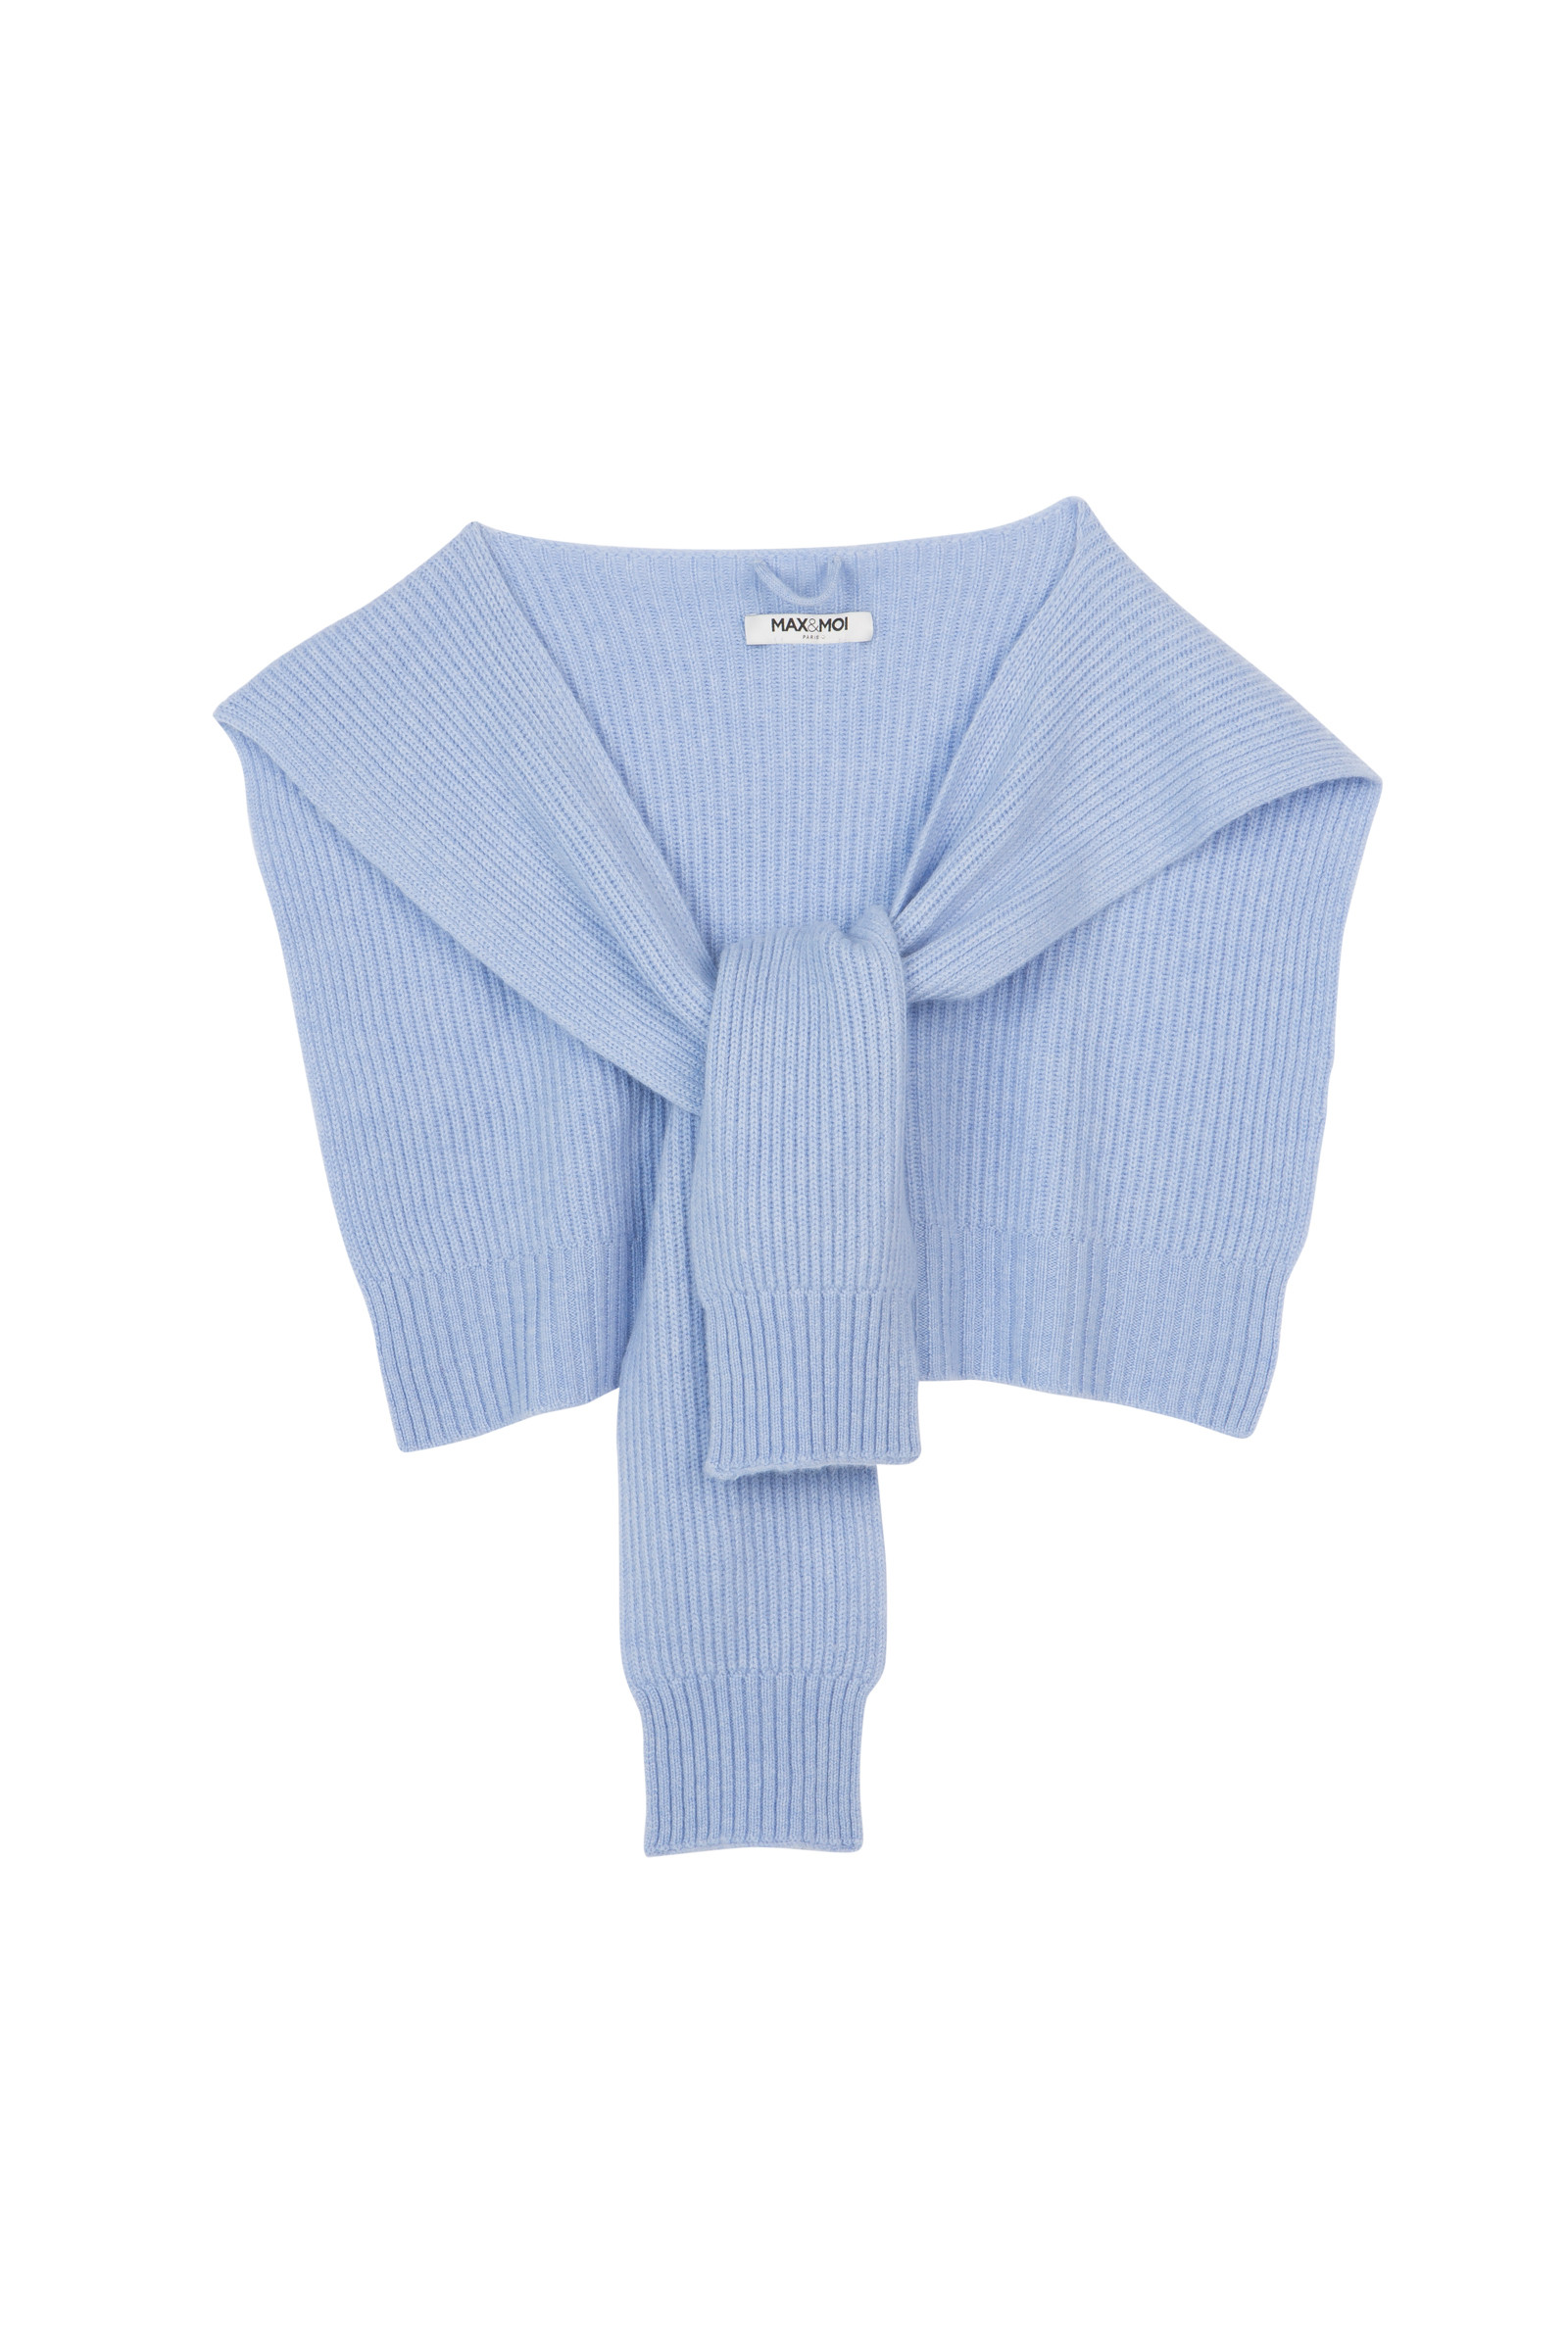 KNITTED SHAWL IN JERSEY KNIT AMORY  BLUEBEACH